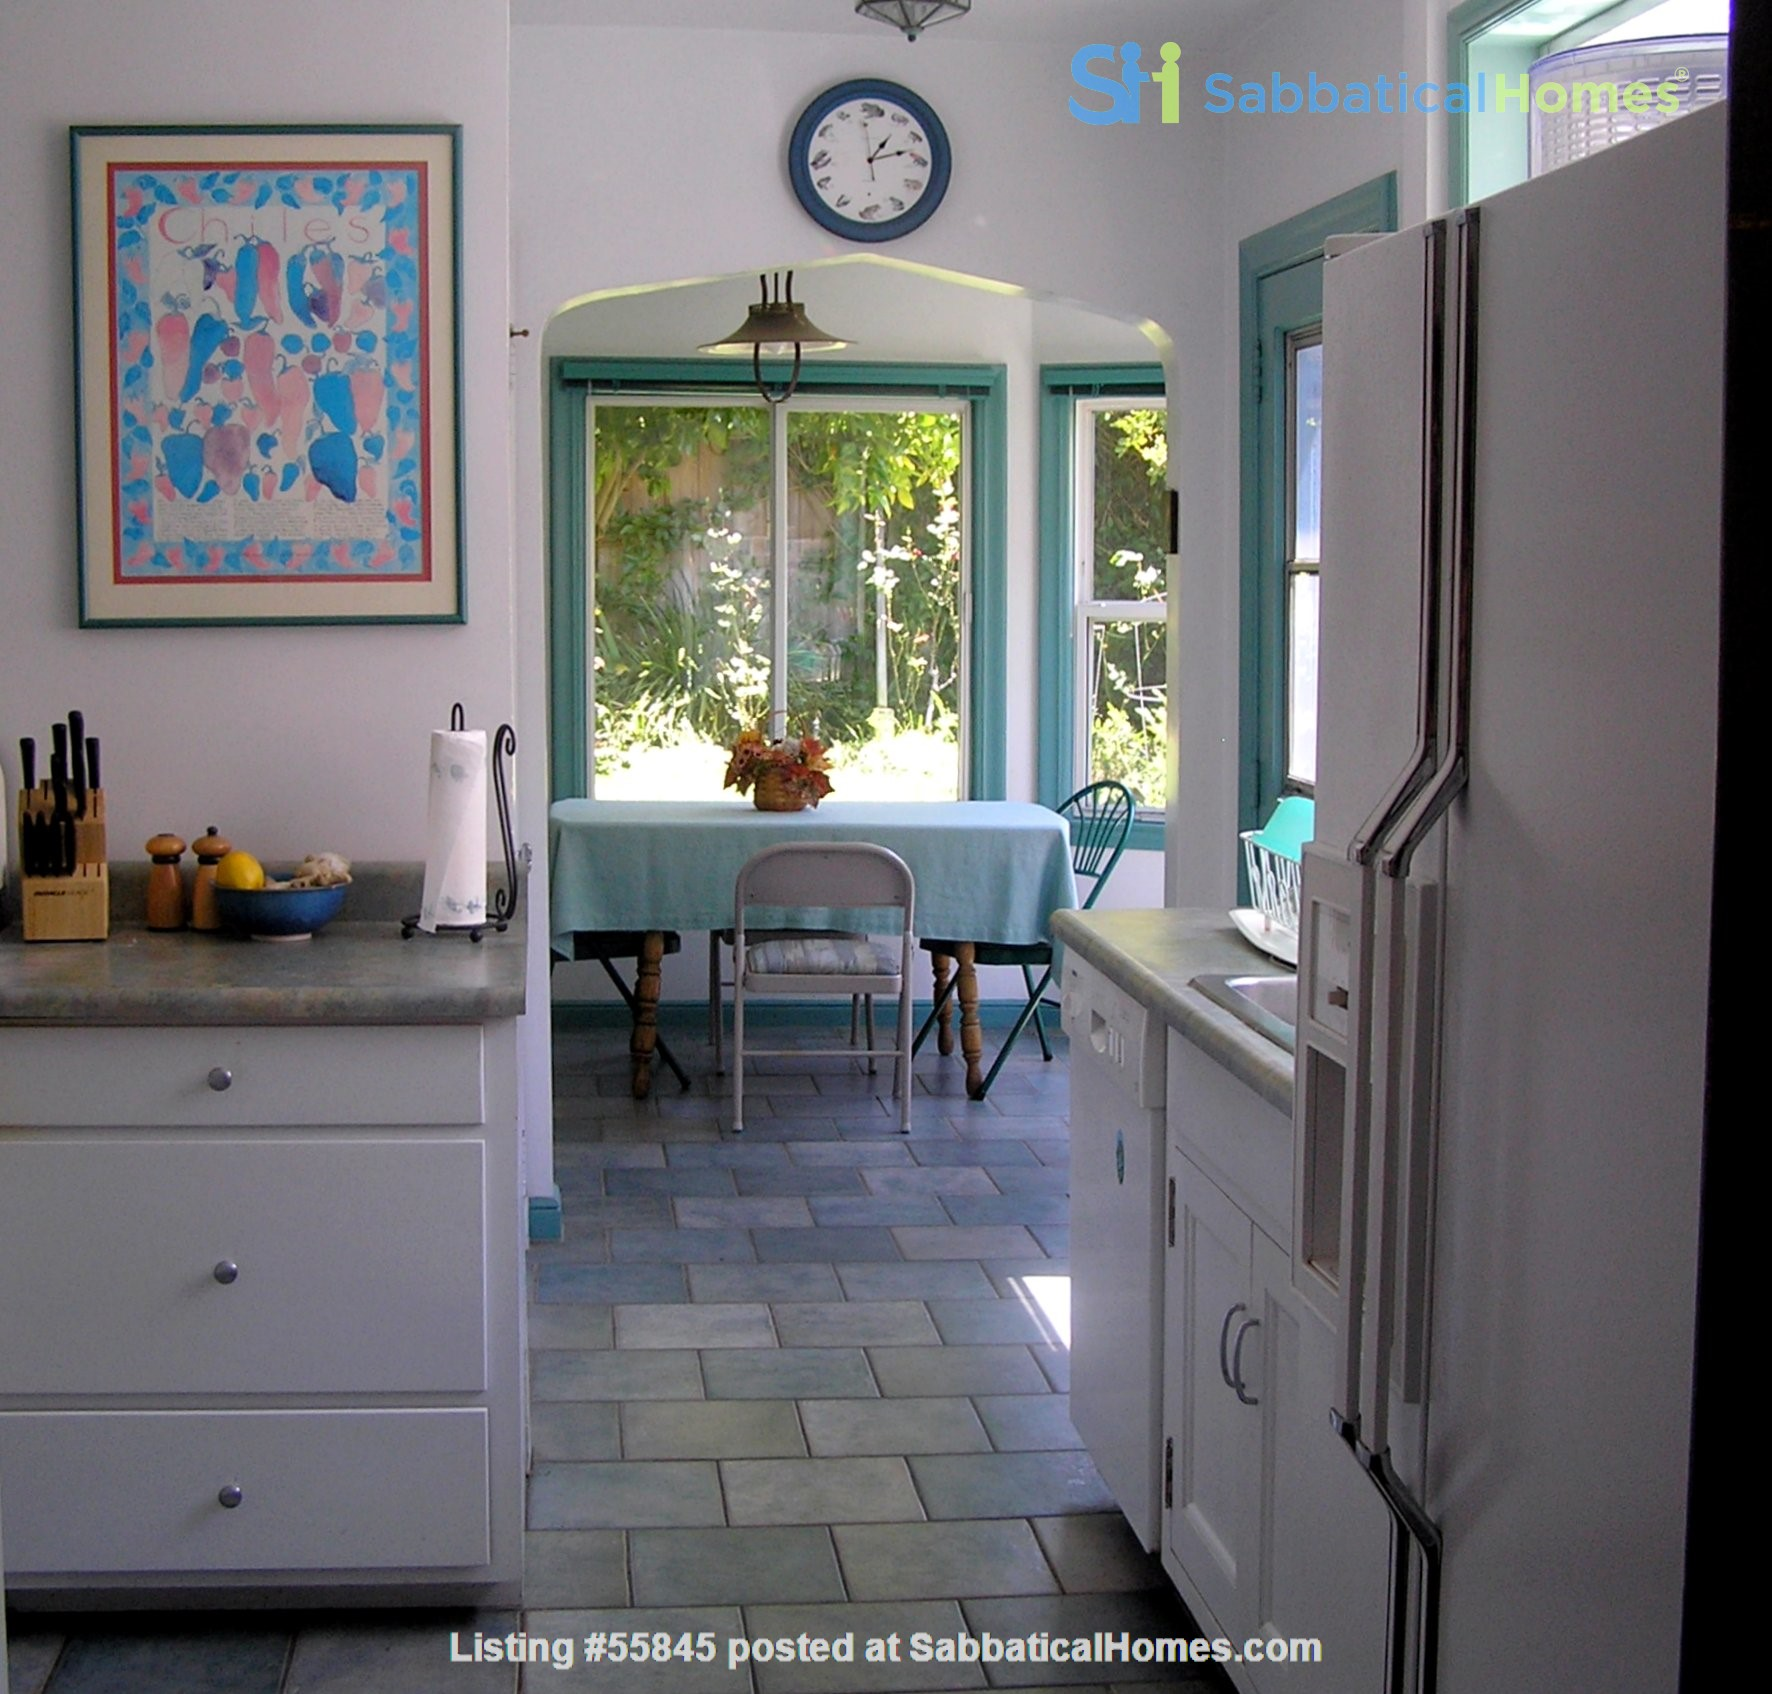 Well-located family home near parks, Gourmet Ghetto, UC Berkeley Home Rental in Berkeley, California, United States 5